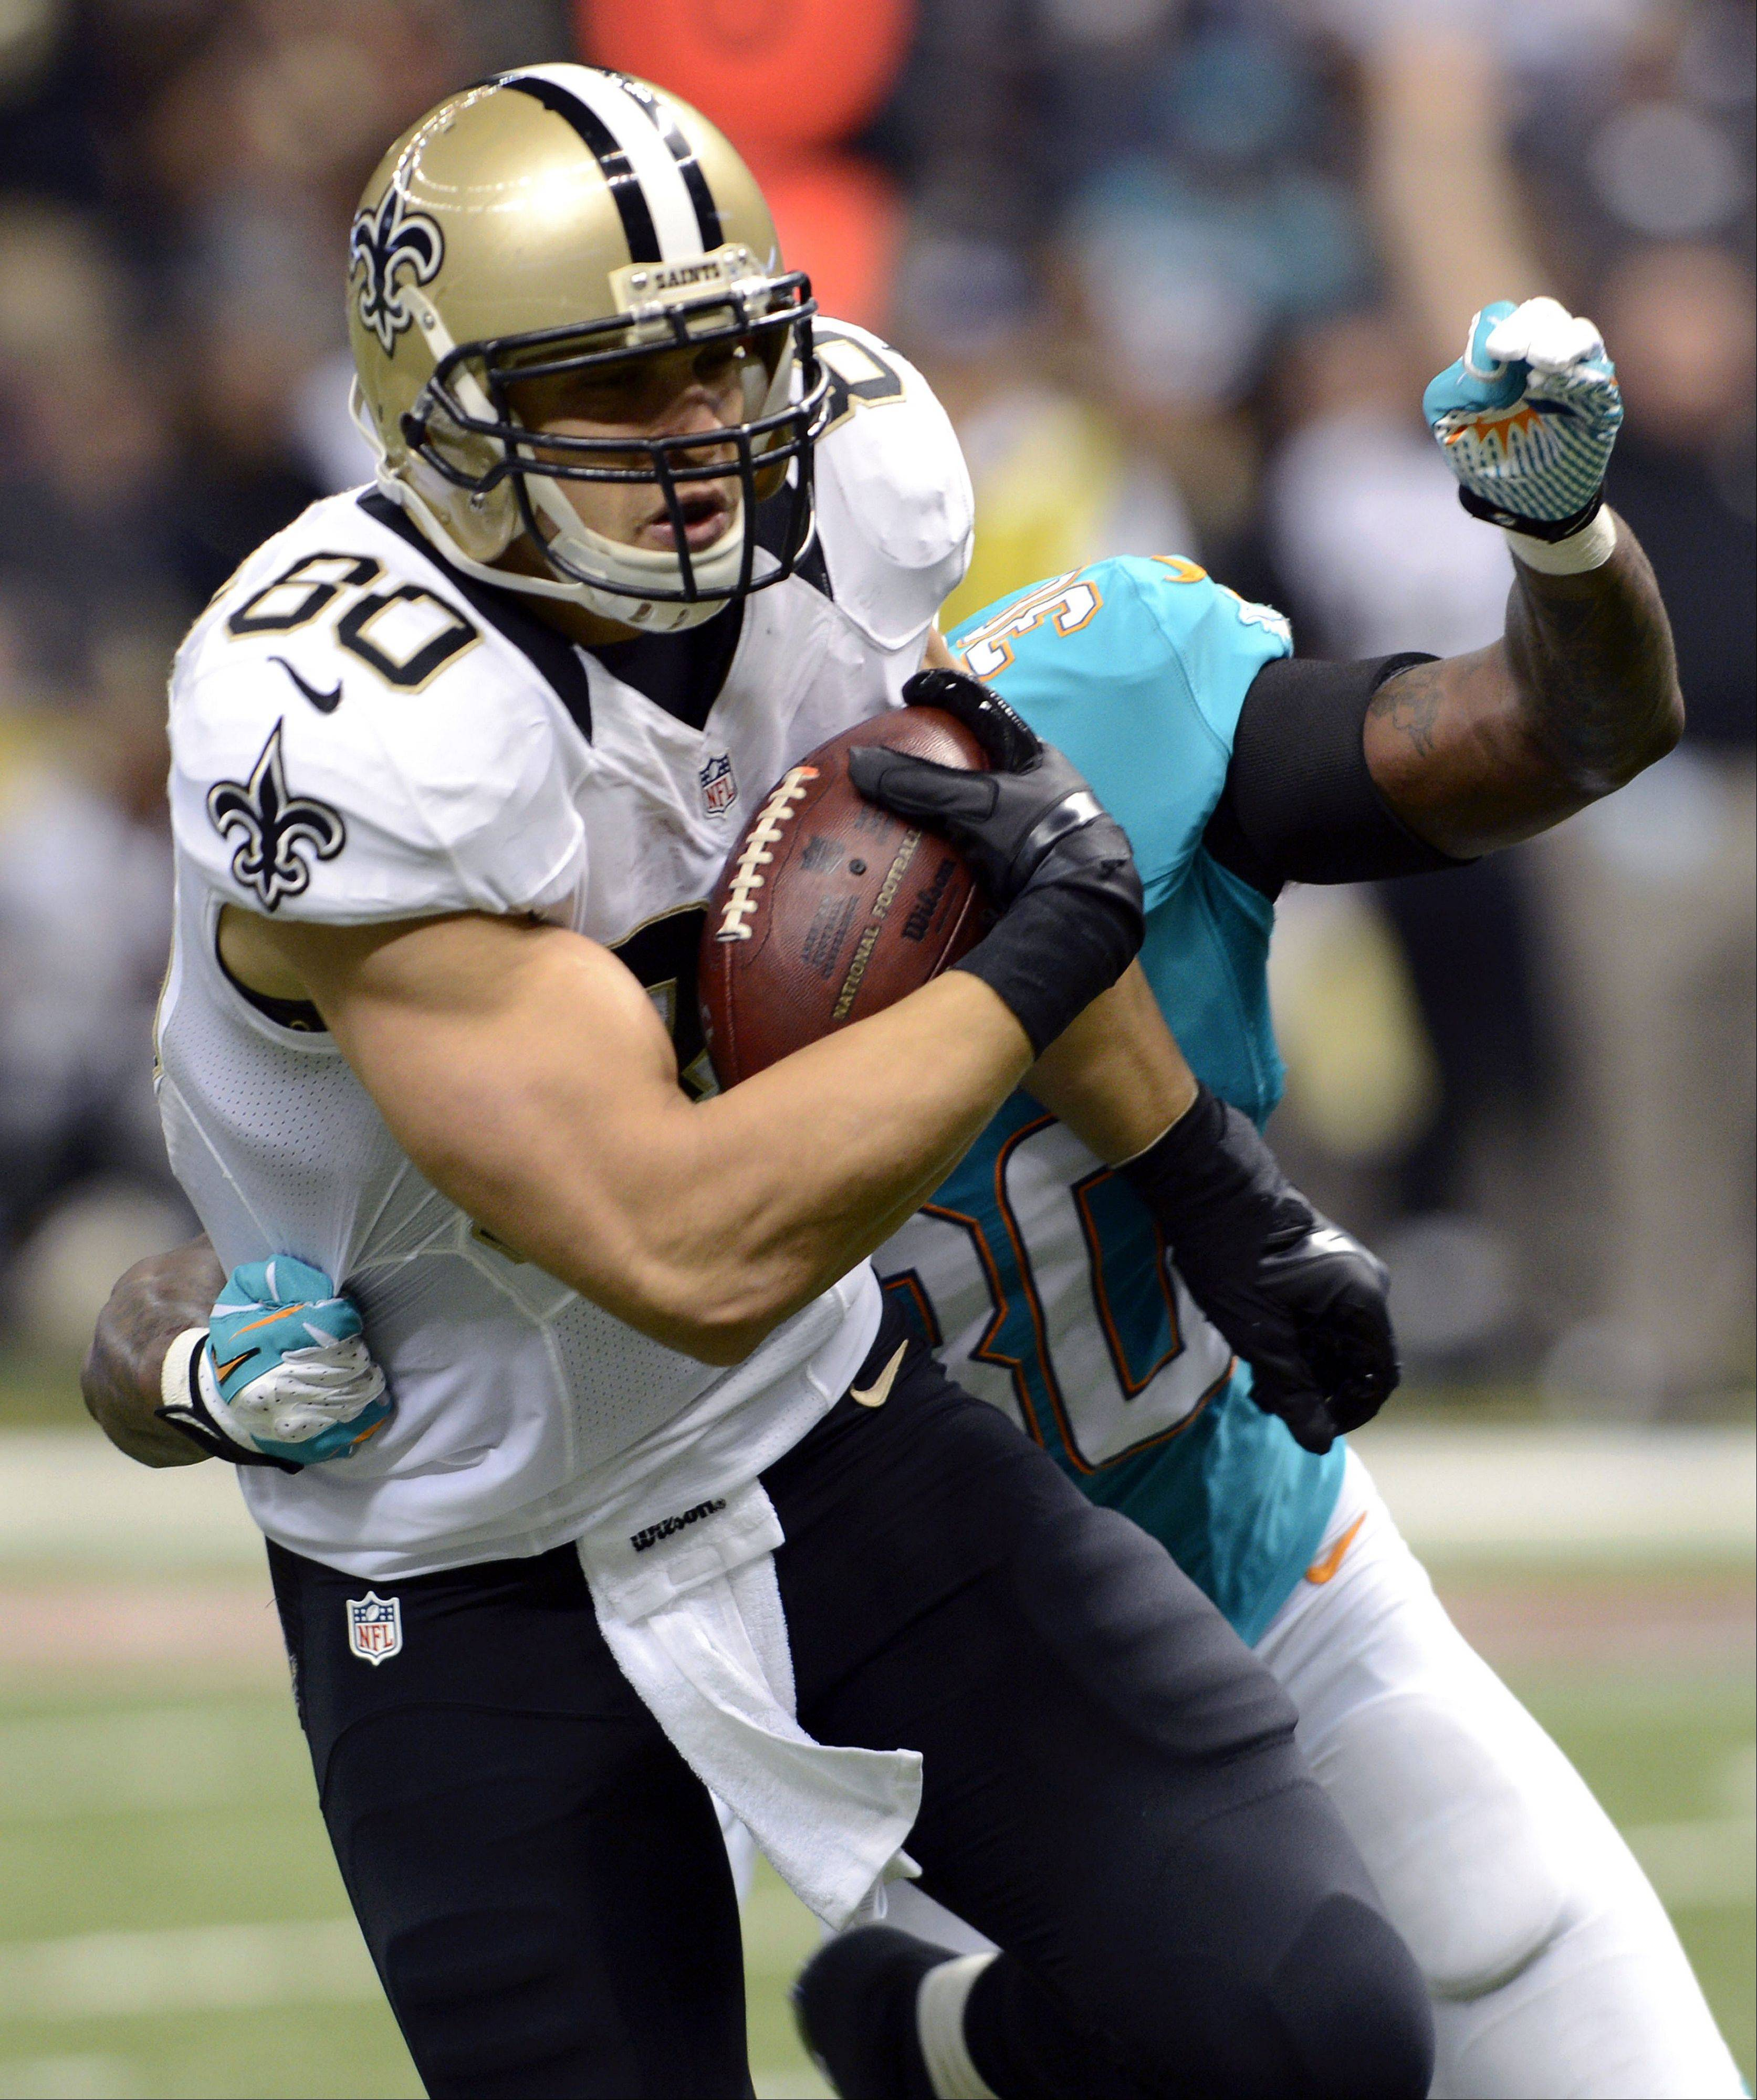 Saints tight end Jimmy Graham leads the NFL with 6 TD catches and is second with 458 receiving yards.